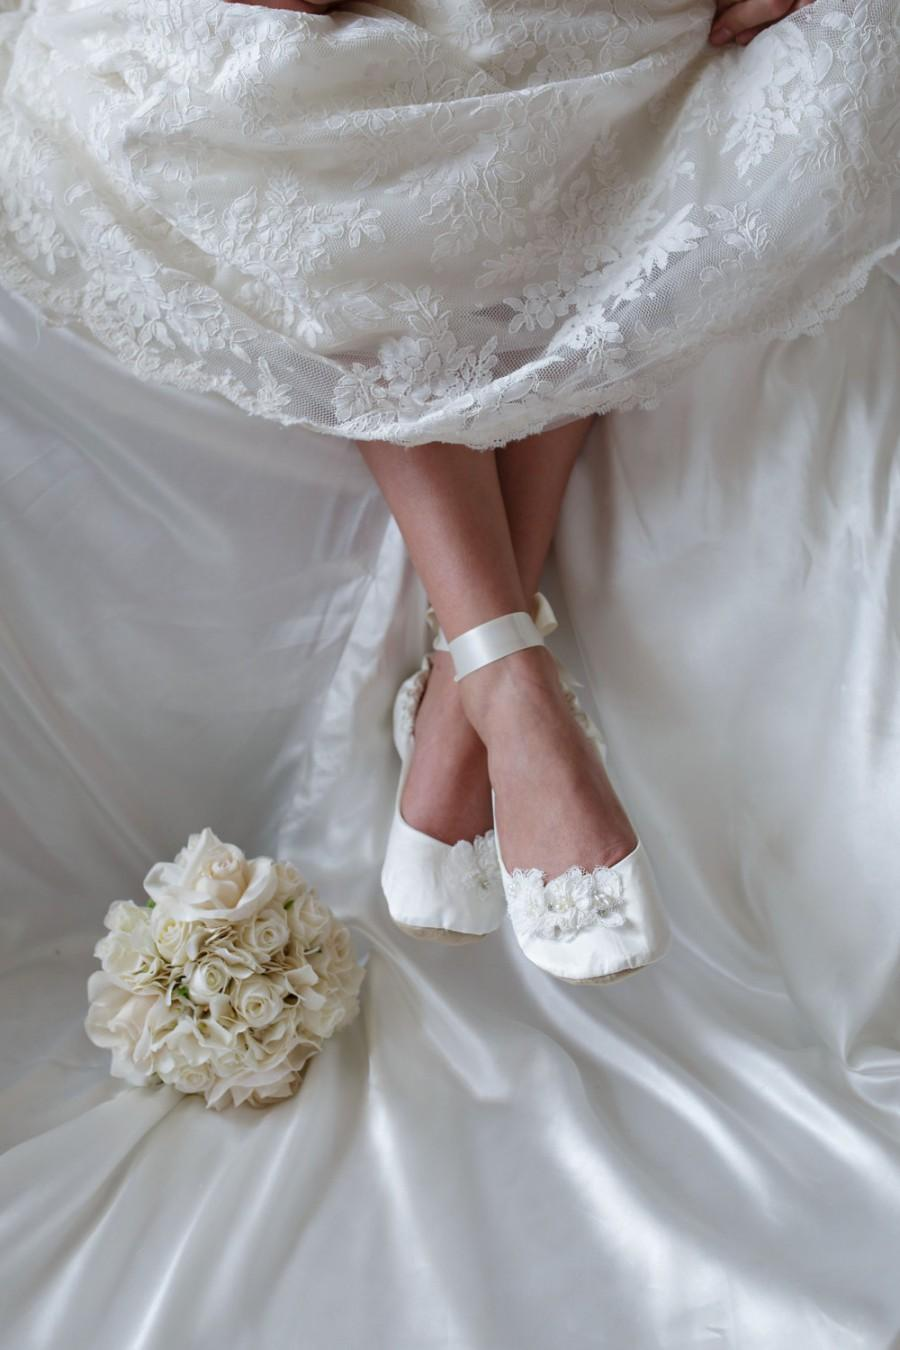 Flat wedding shoe lace wedding shoe lace bridal flat shoe rose flat wedding shoe lace wedding shoe lace bridal flat shoe rose lace bridal flat shoeivory bridal flat shoe cream bridal shoe junglespirit Image collections